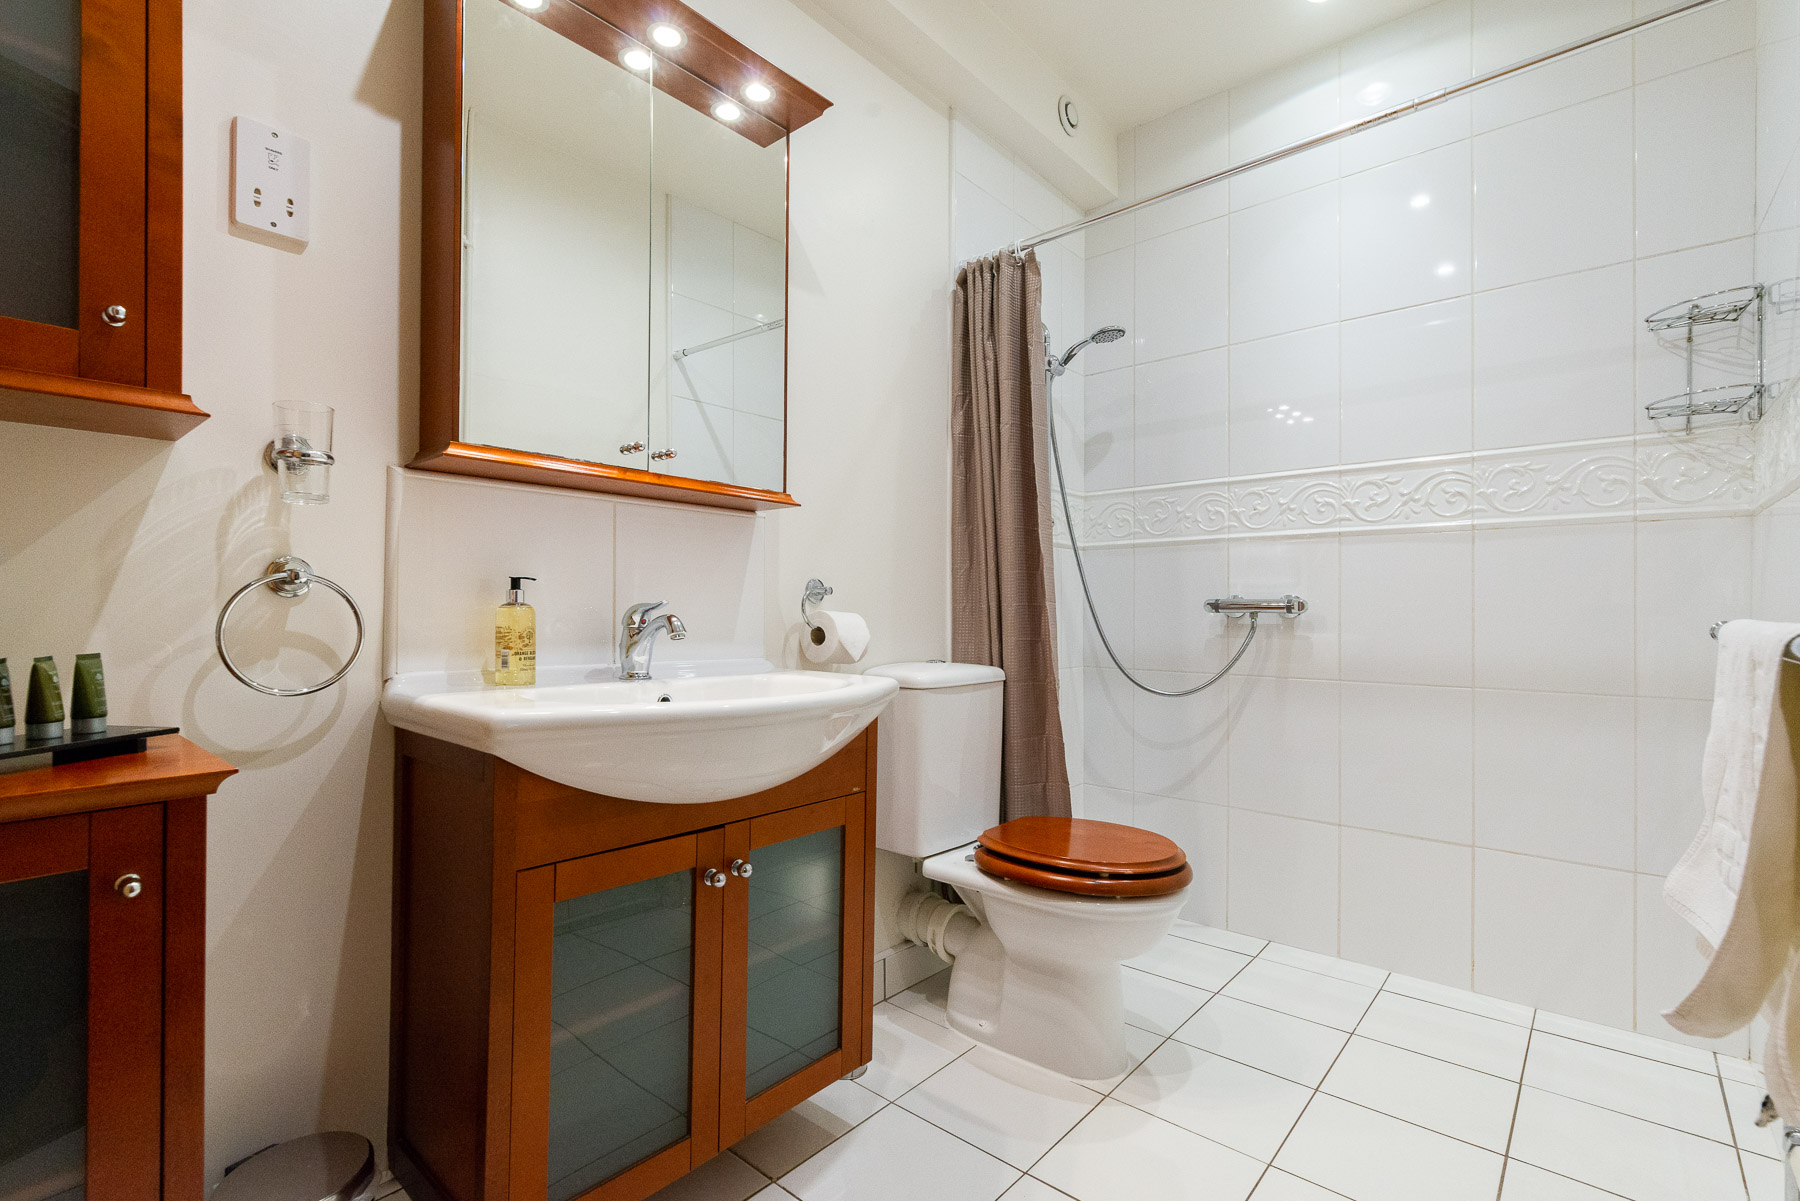 Bowland Bower Shower room . A boutique luxury Ribble Valley holiday cottage.